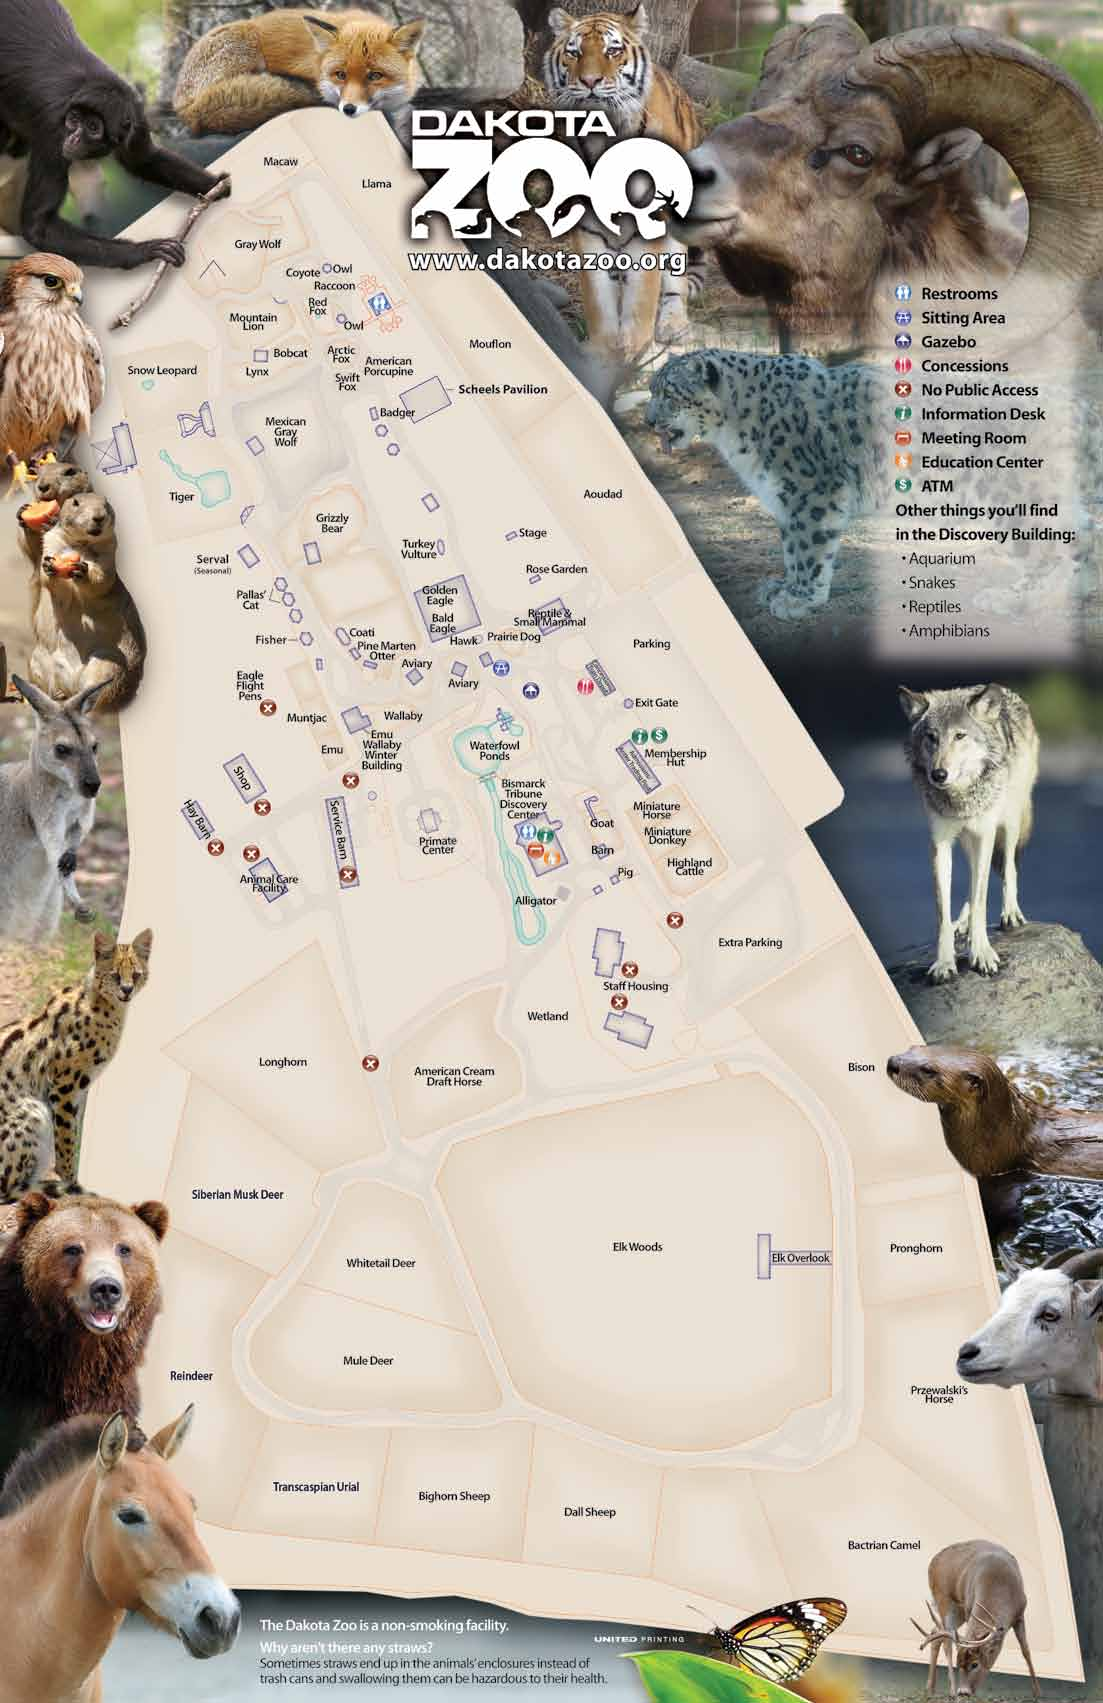 Map of Dakota Zoo